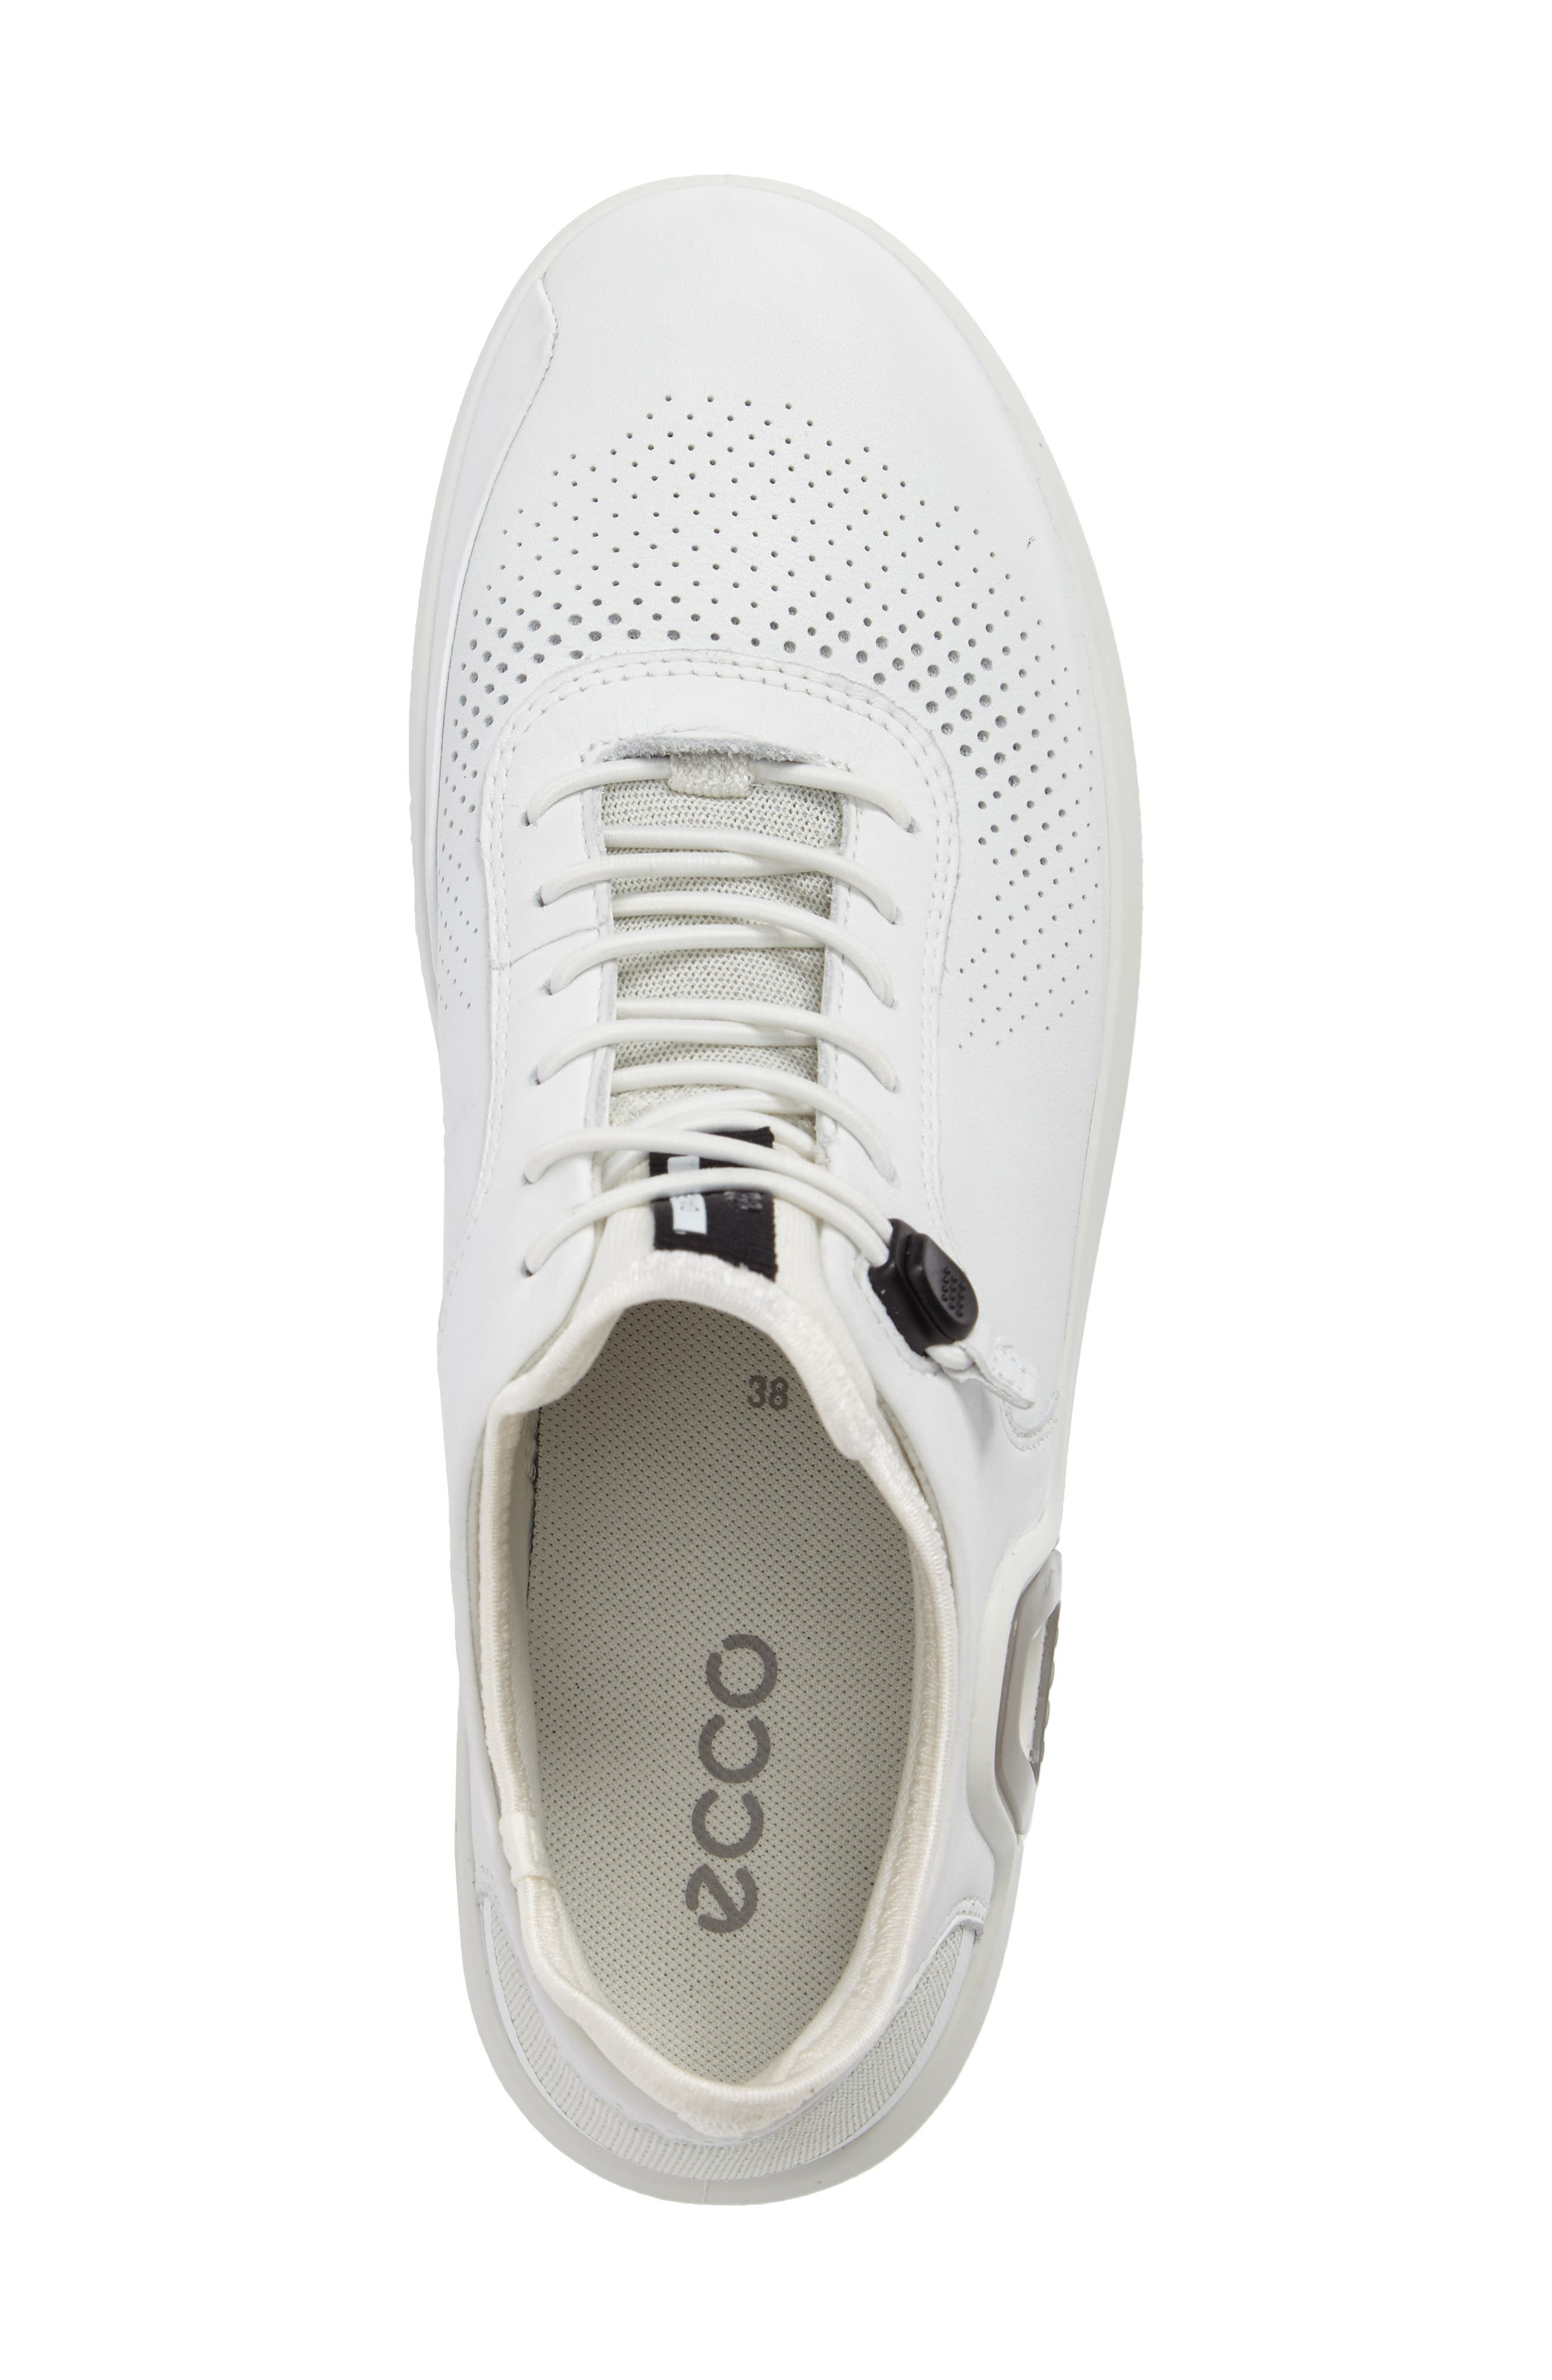 Intrinsic 3 Sneaker,                             Alternate thumbnail 4, color,                             White Leather